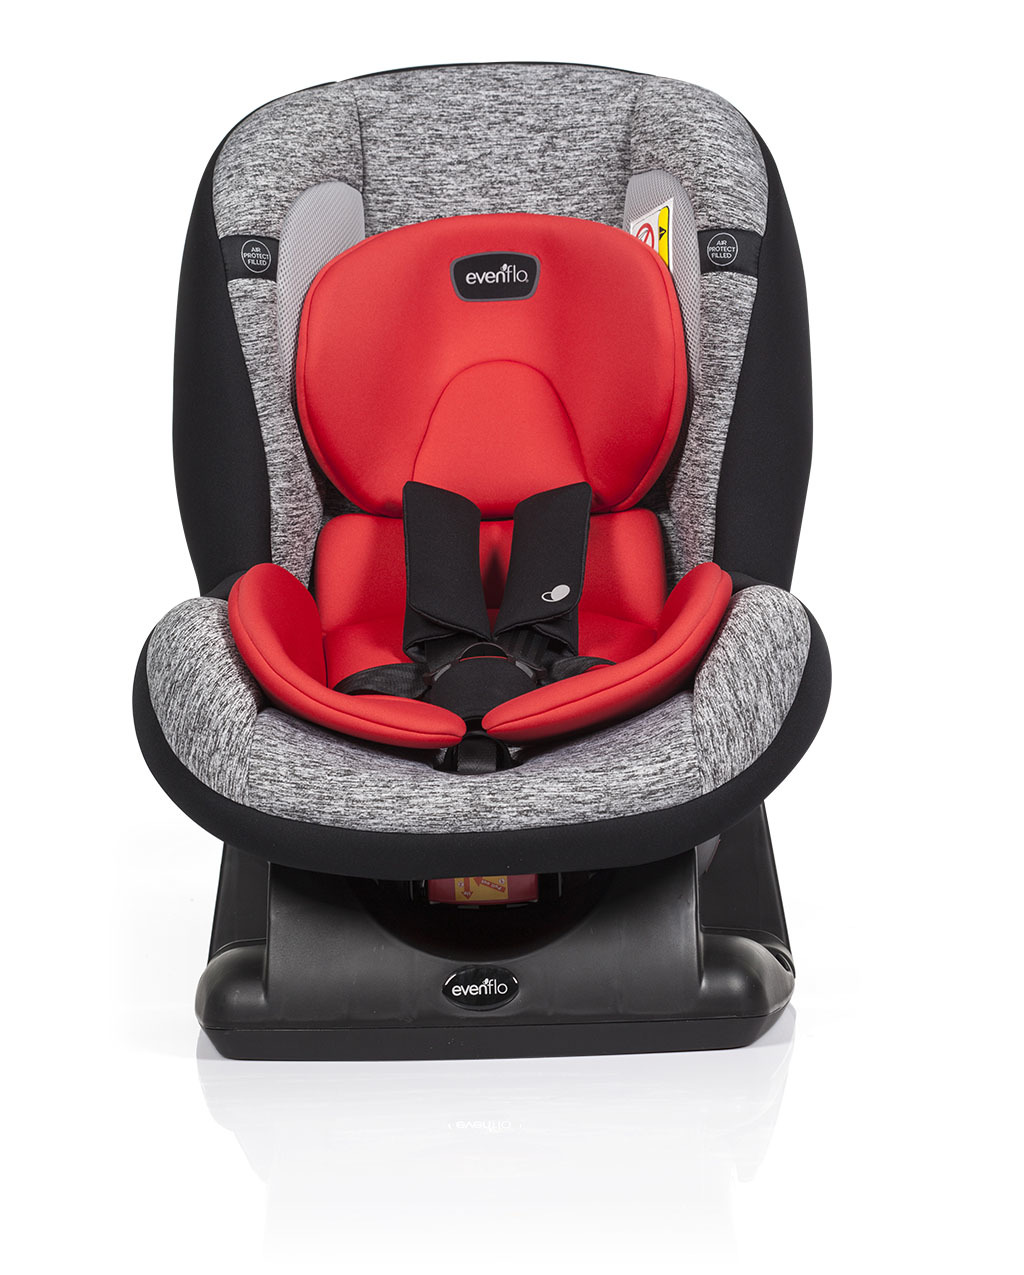 When To Switch From Car Seat To Stroller Qoo10 Evenflo Andes Carseat 18kg Red Eta End Aug